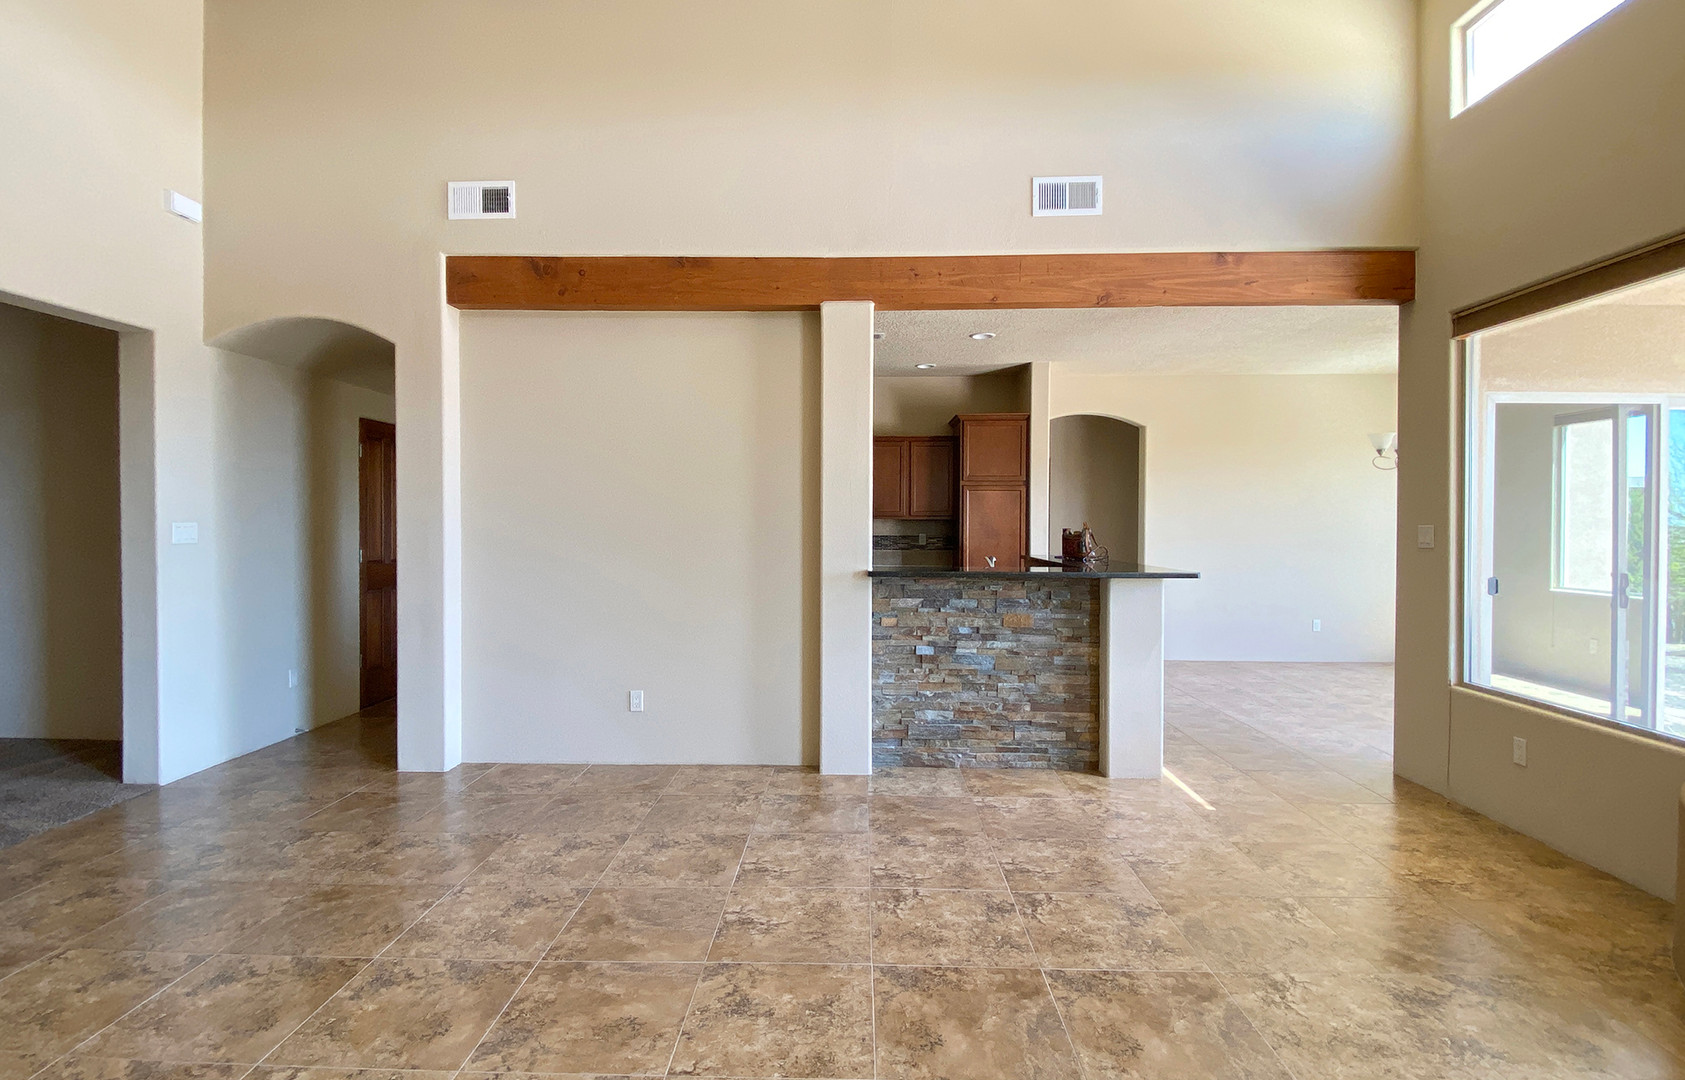 Canto Del Pajaro | Open Concept Floorplans Need Staging to Help Buyers Visualize Space Use